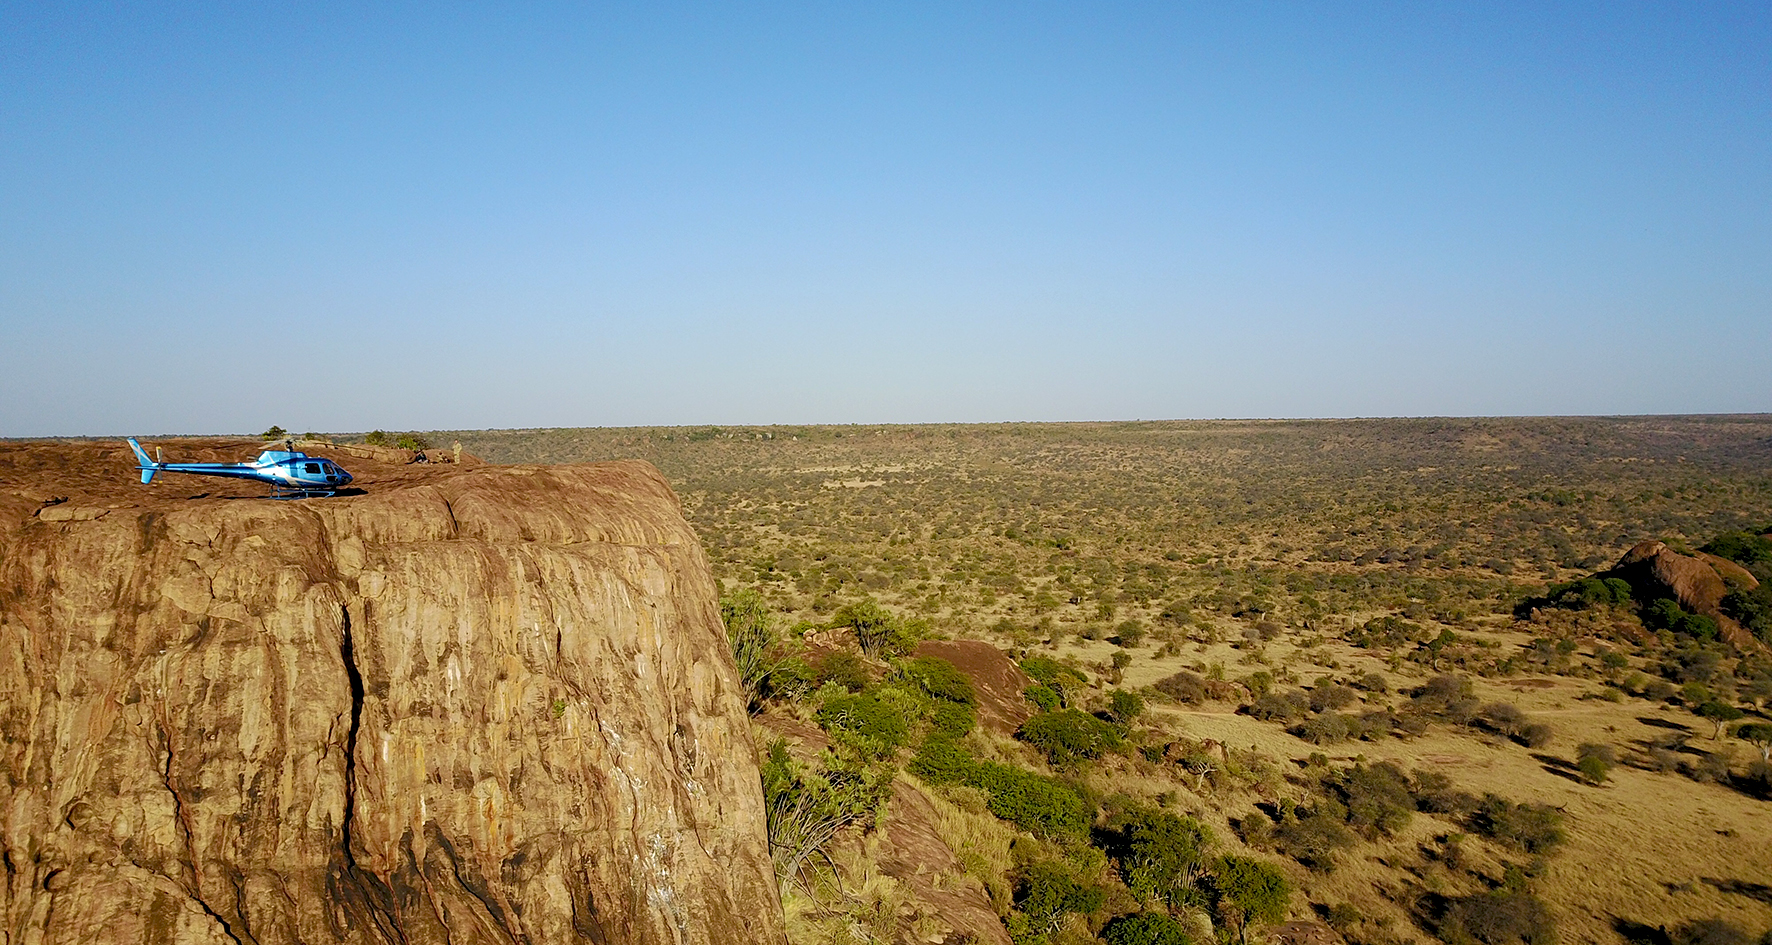 Landing on Baboon Rock, Laikipia